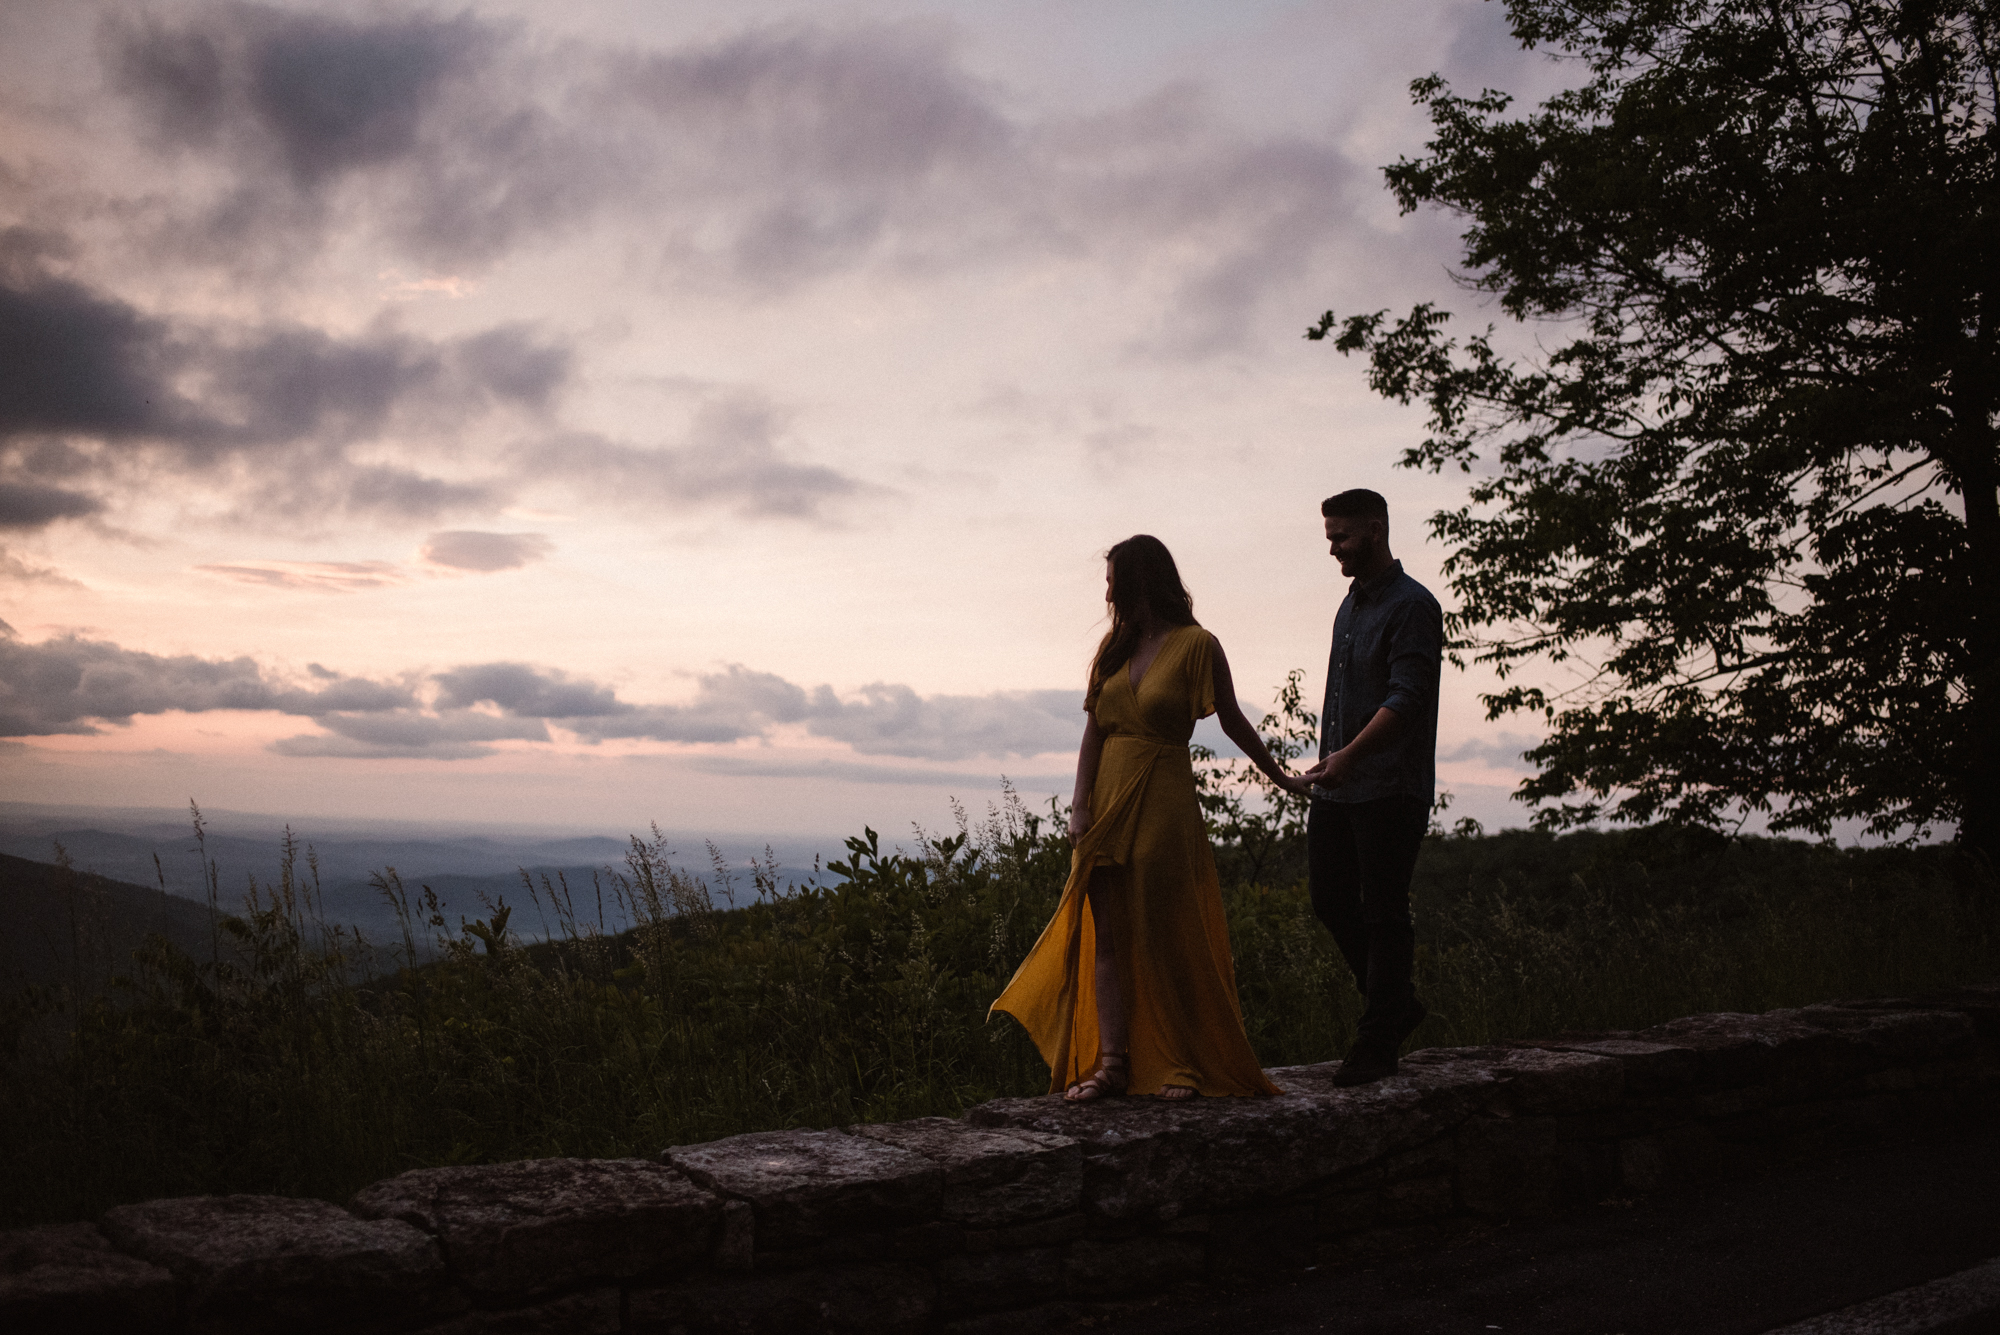 Camryn and Larry Sunrise Engagement Session in Shenandoah National Park - Things to Do in Luray Virginia - Adventurous Couple Photo Shoot White Sails Creative.jpg